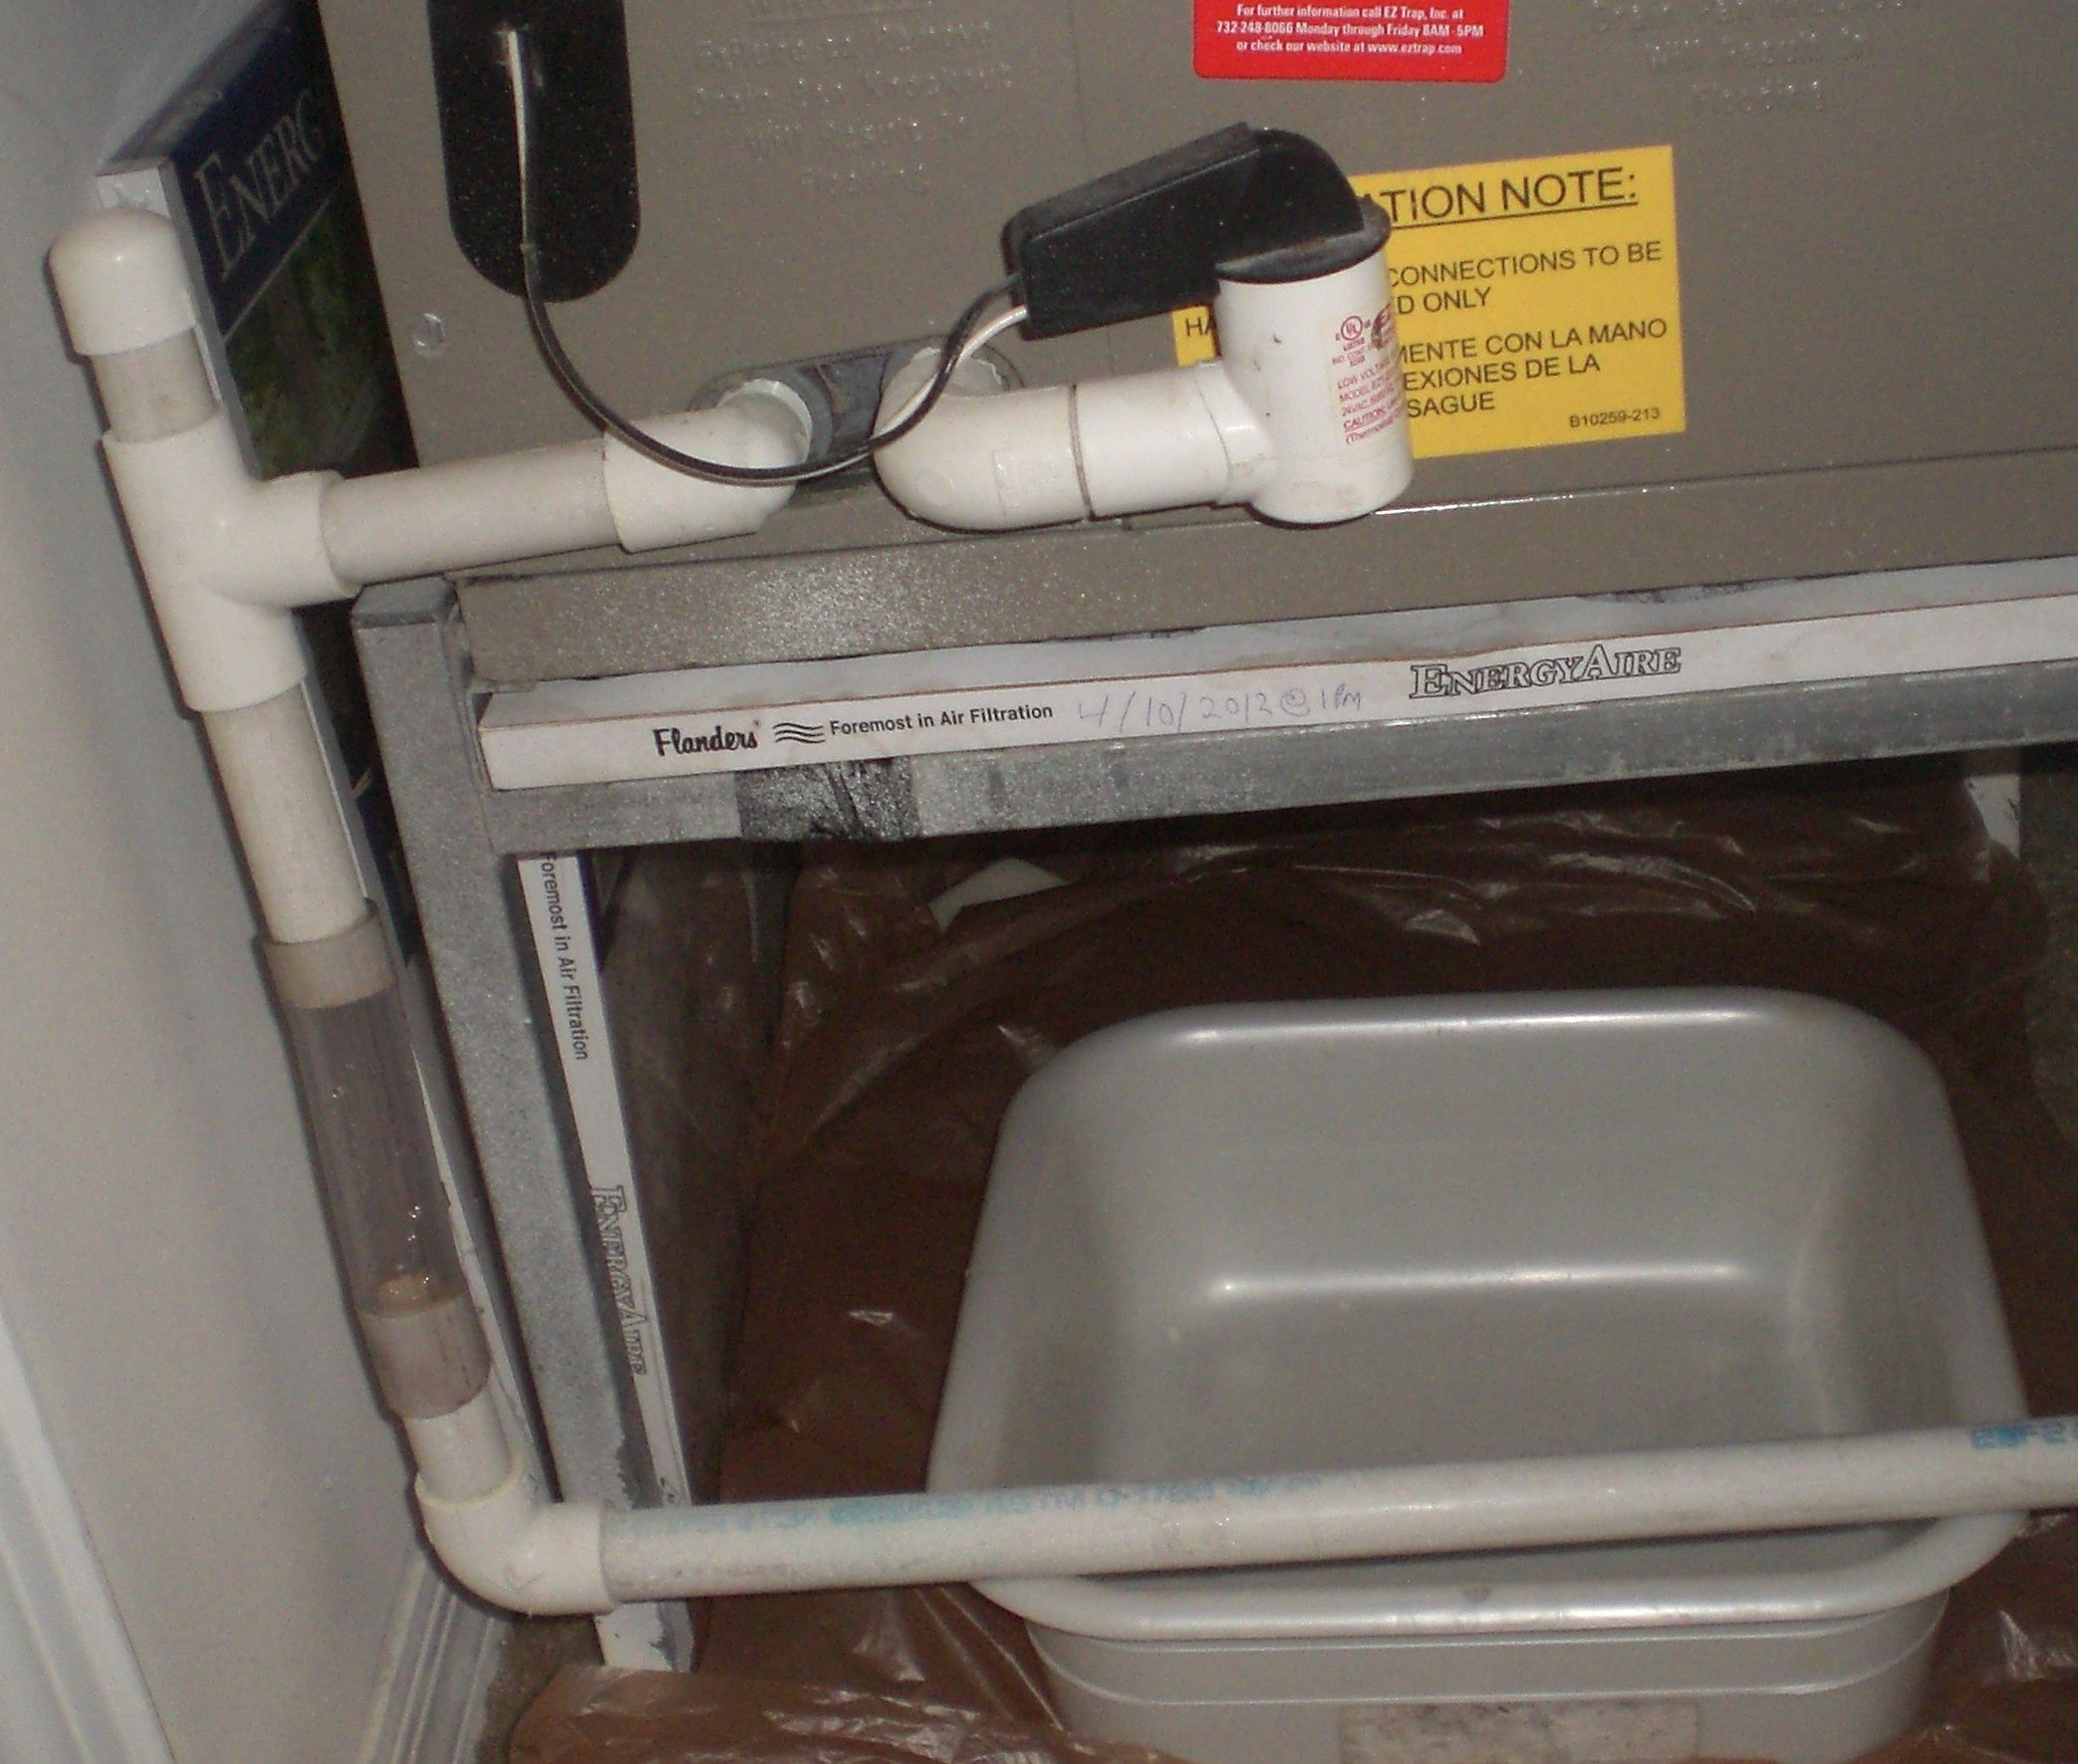 Central Air Conditioner Leaking Water Inside House Feels Free To